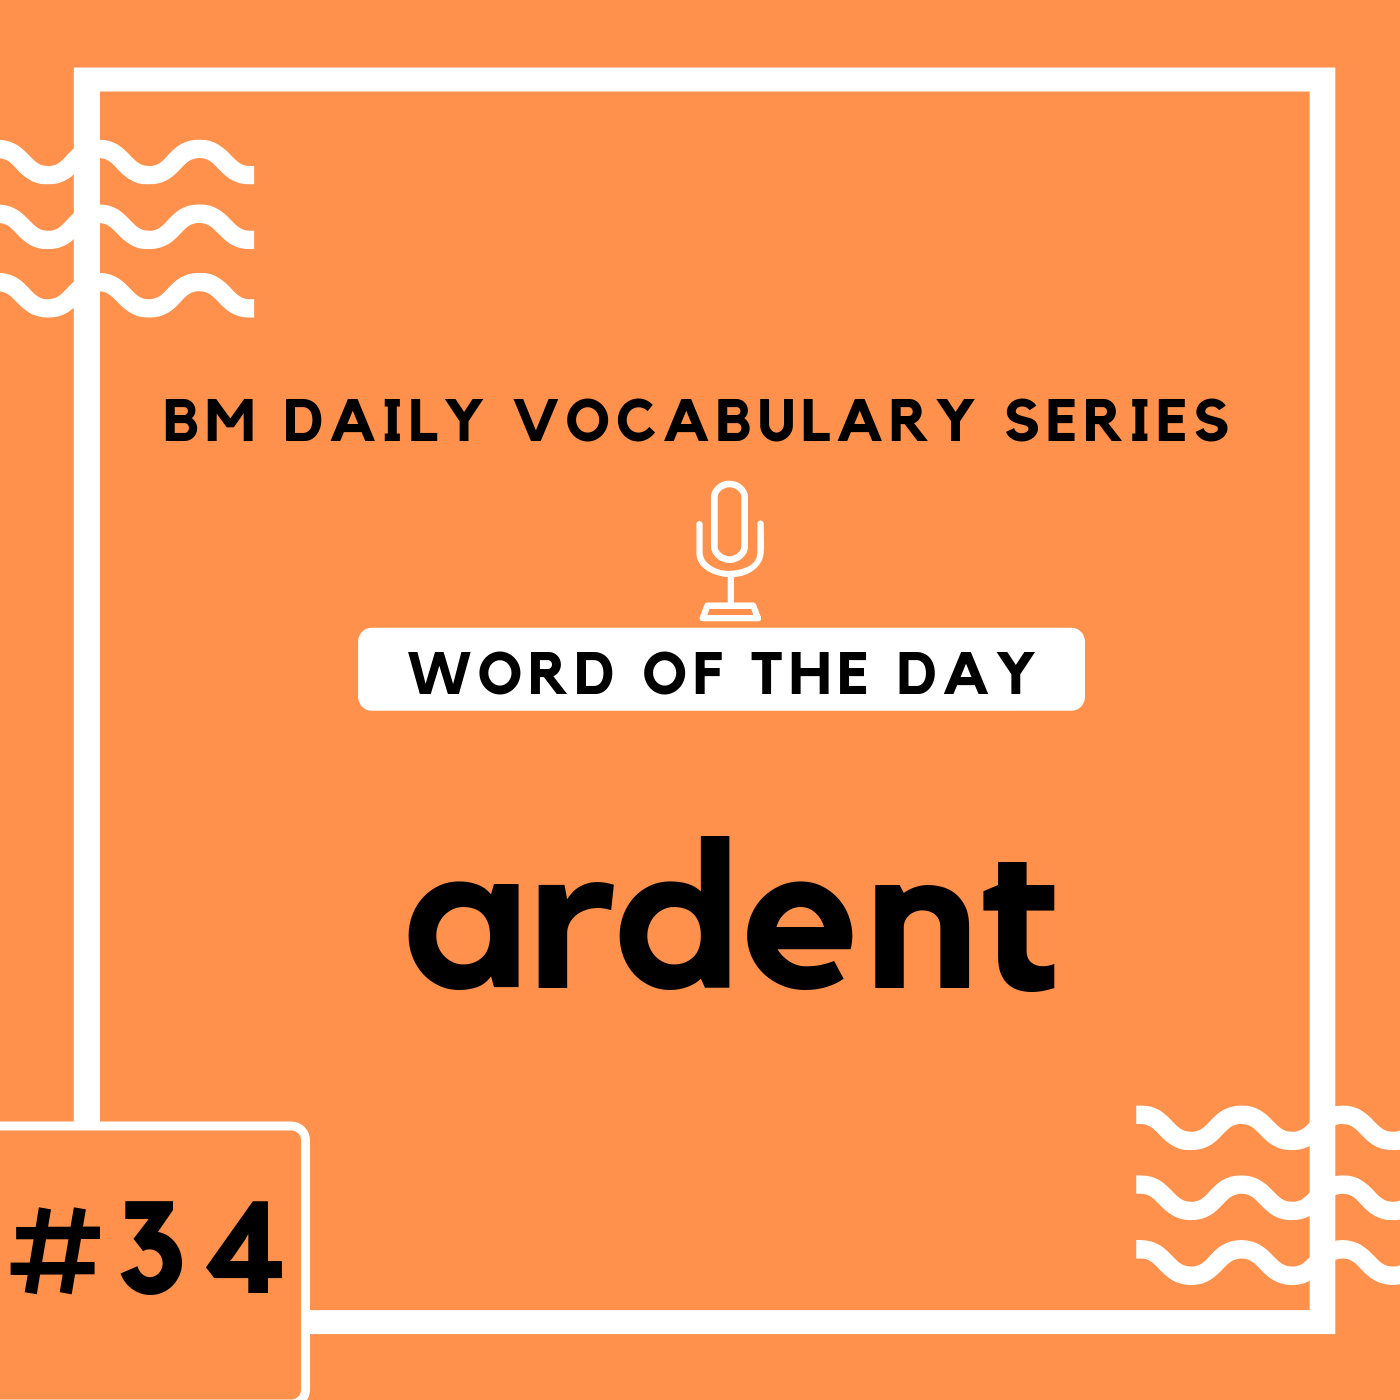 200 BM Daily Vocabulary #34 | ardent